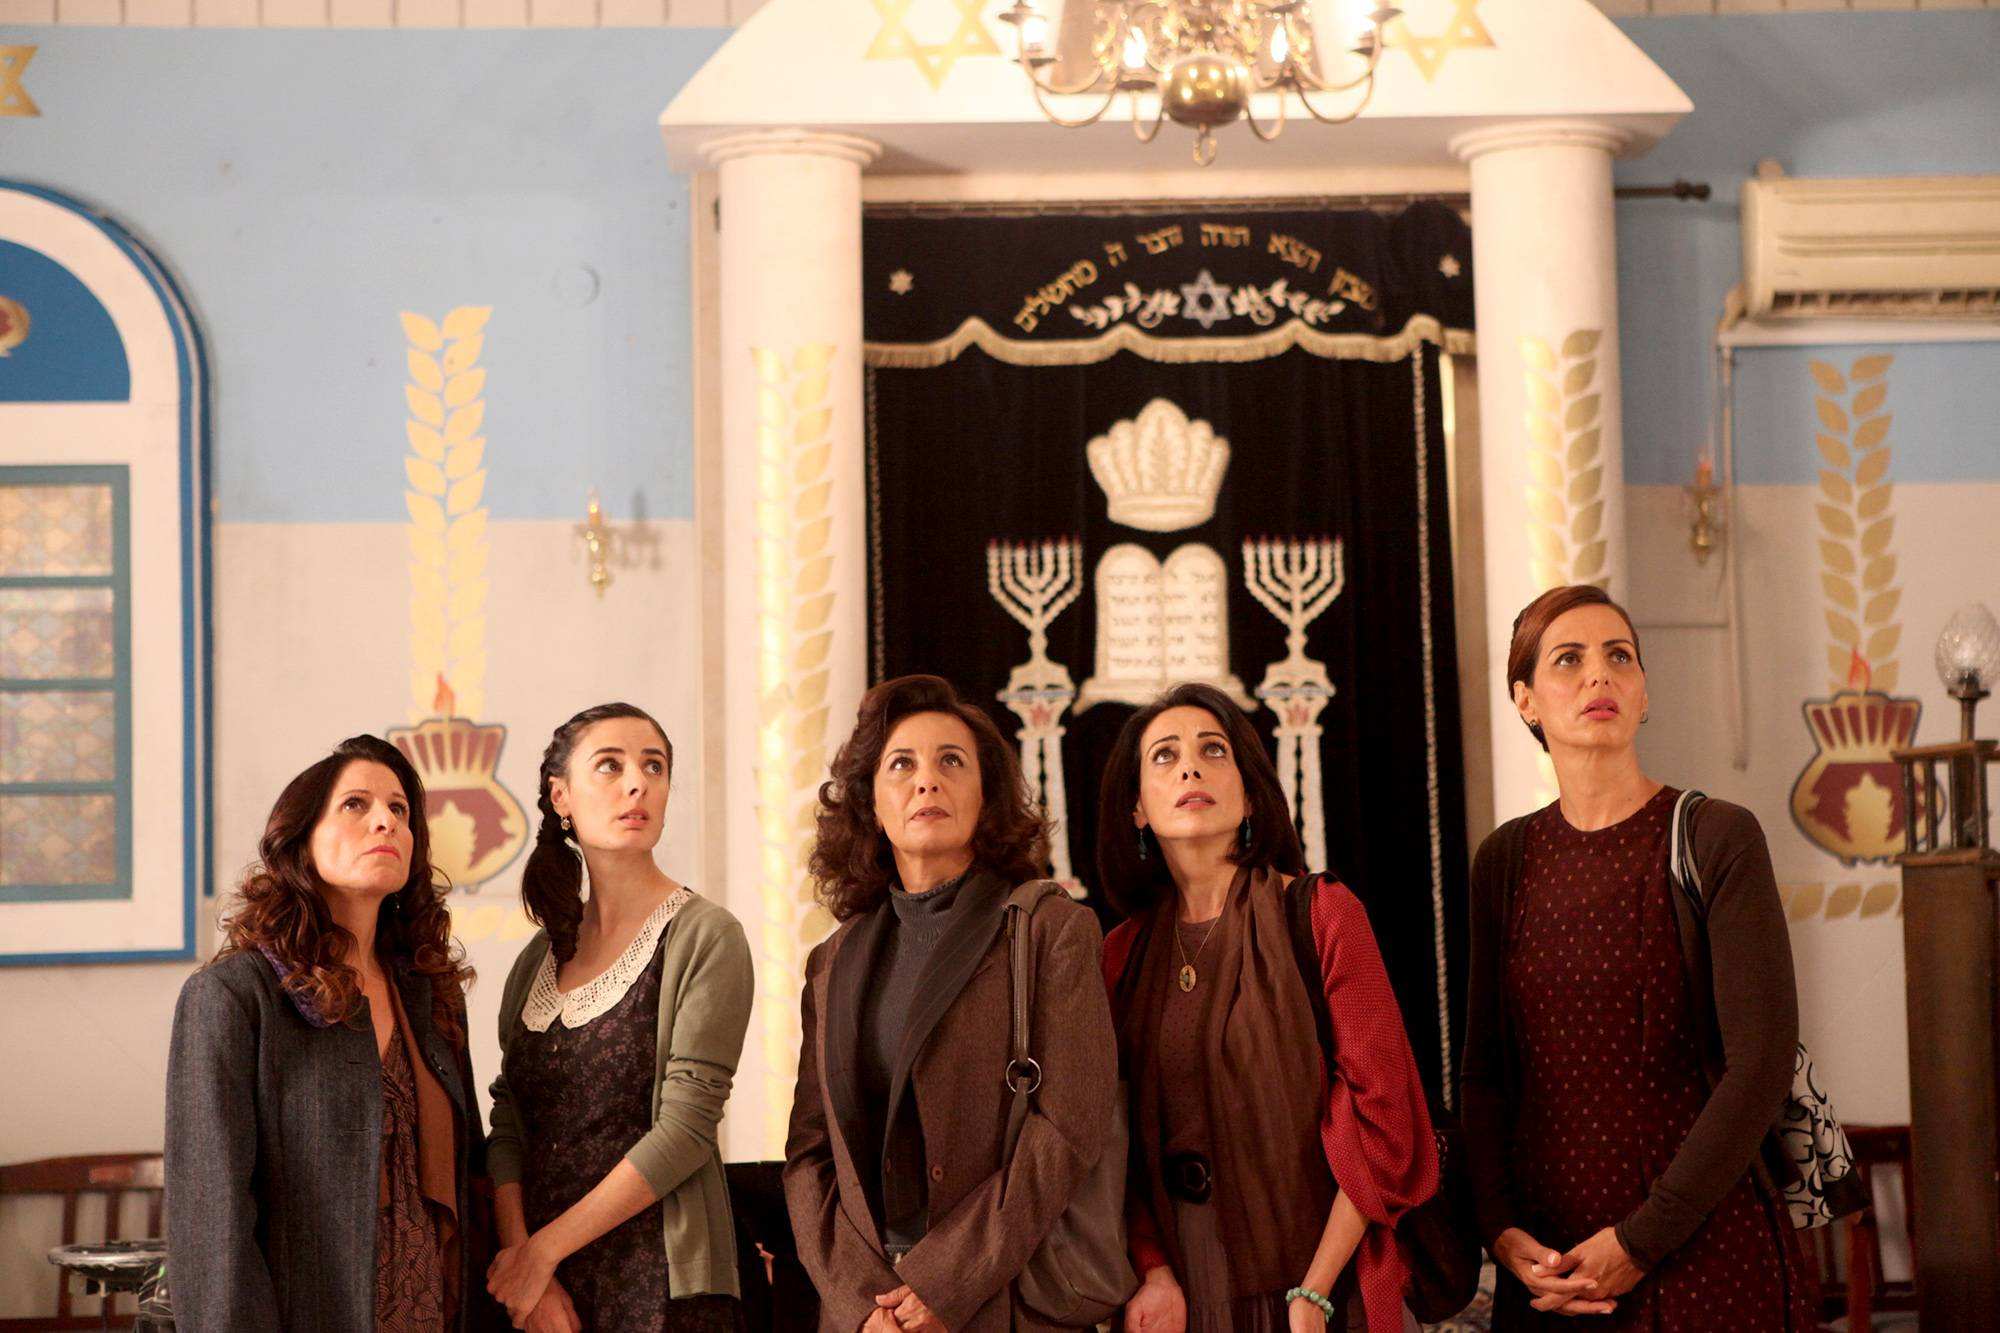 "Charlestowne 18 in St. Charles will feature the 2016 Israeli comedy ""The Women's Balcony"" at the next First Wednesday Film Club."